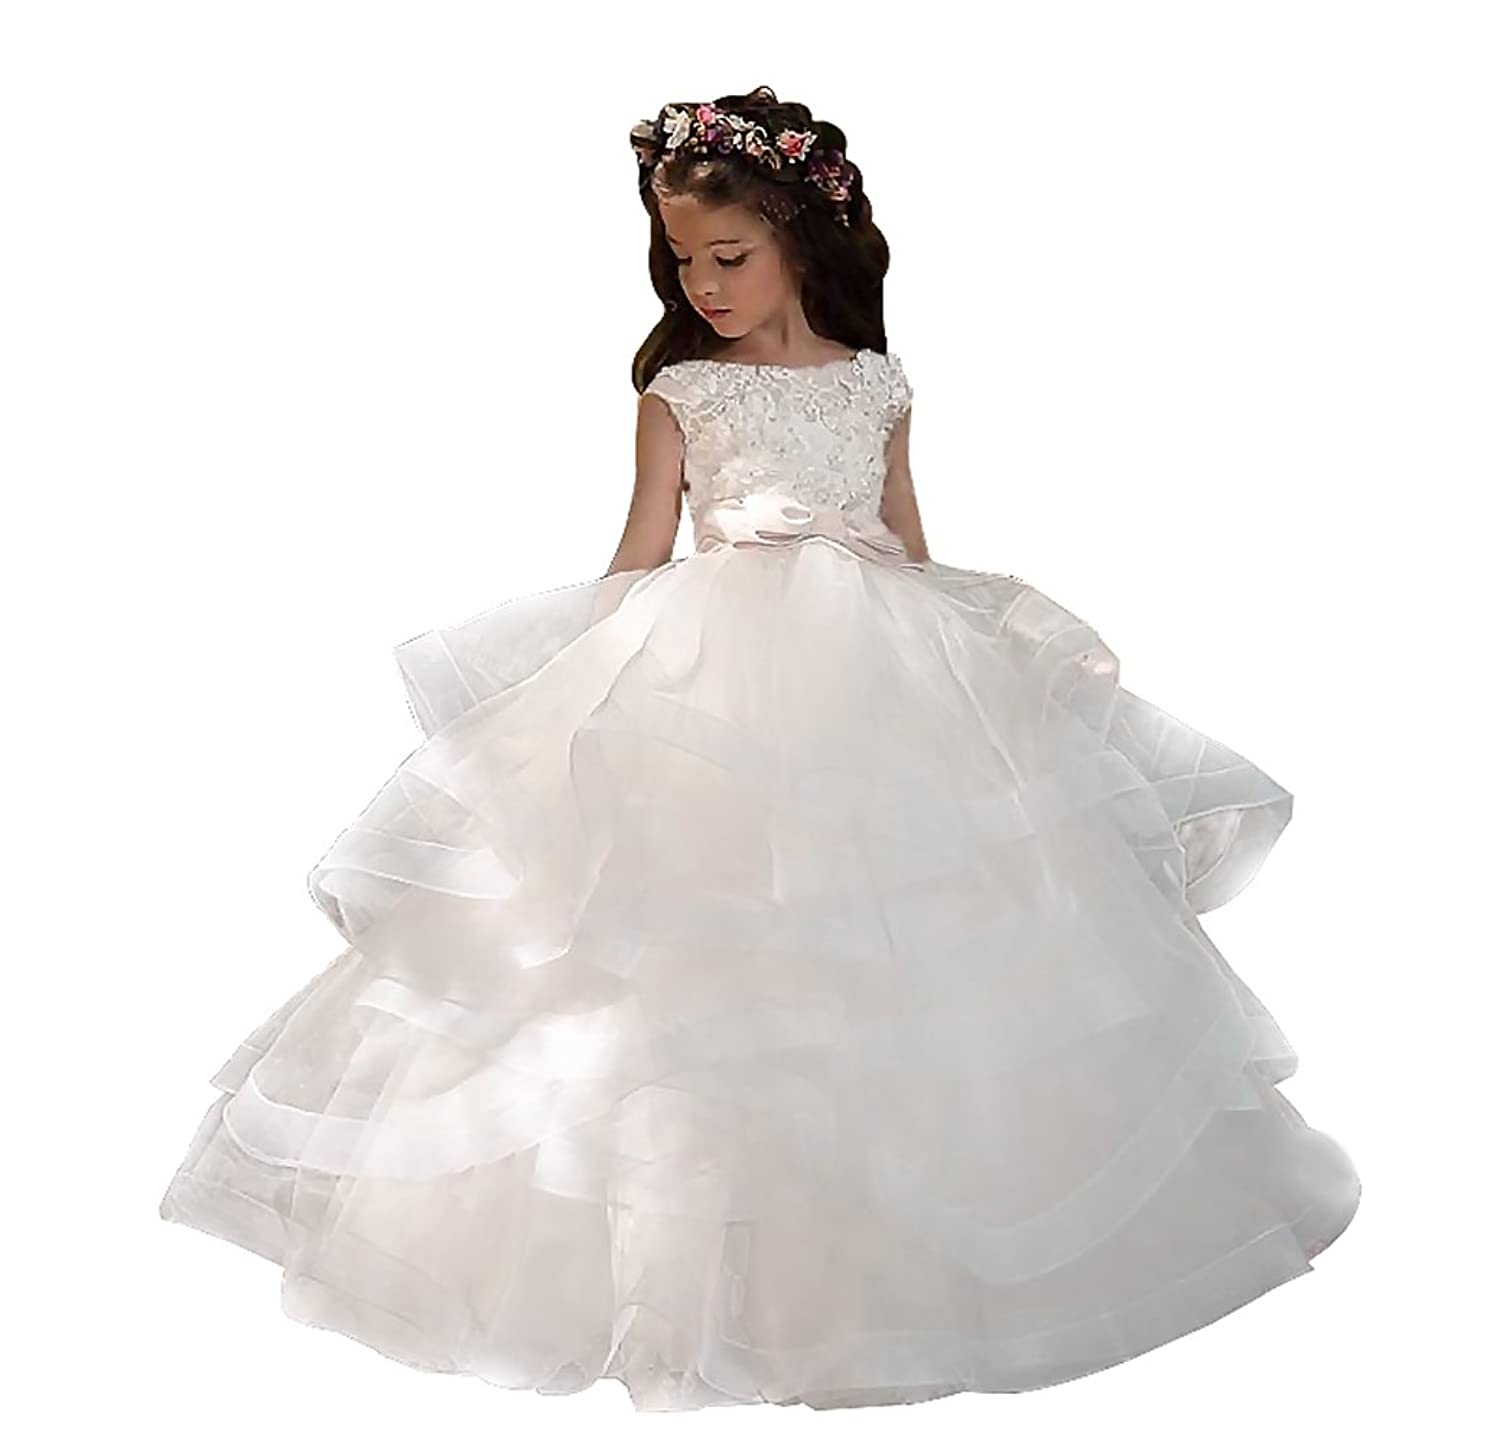 Adela Ball Lace Beaded Pageant Flower Girl Dresses Long Kids Prom Pageant First Communion Gown AR010